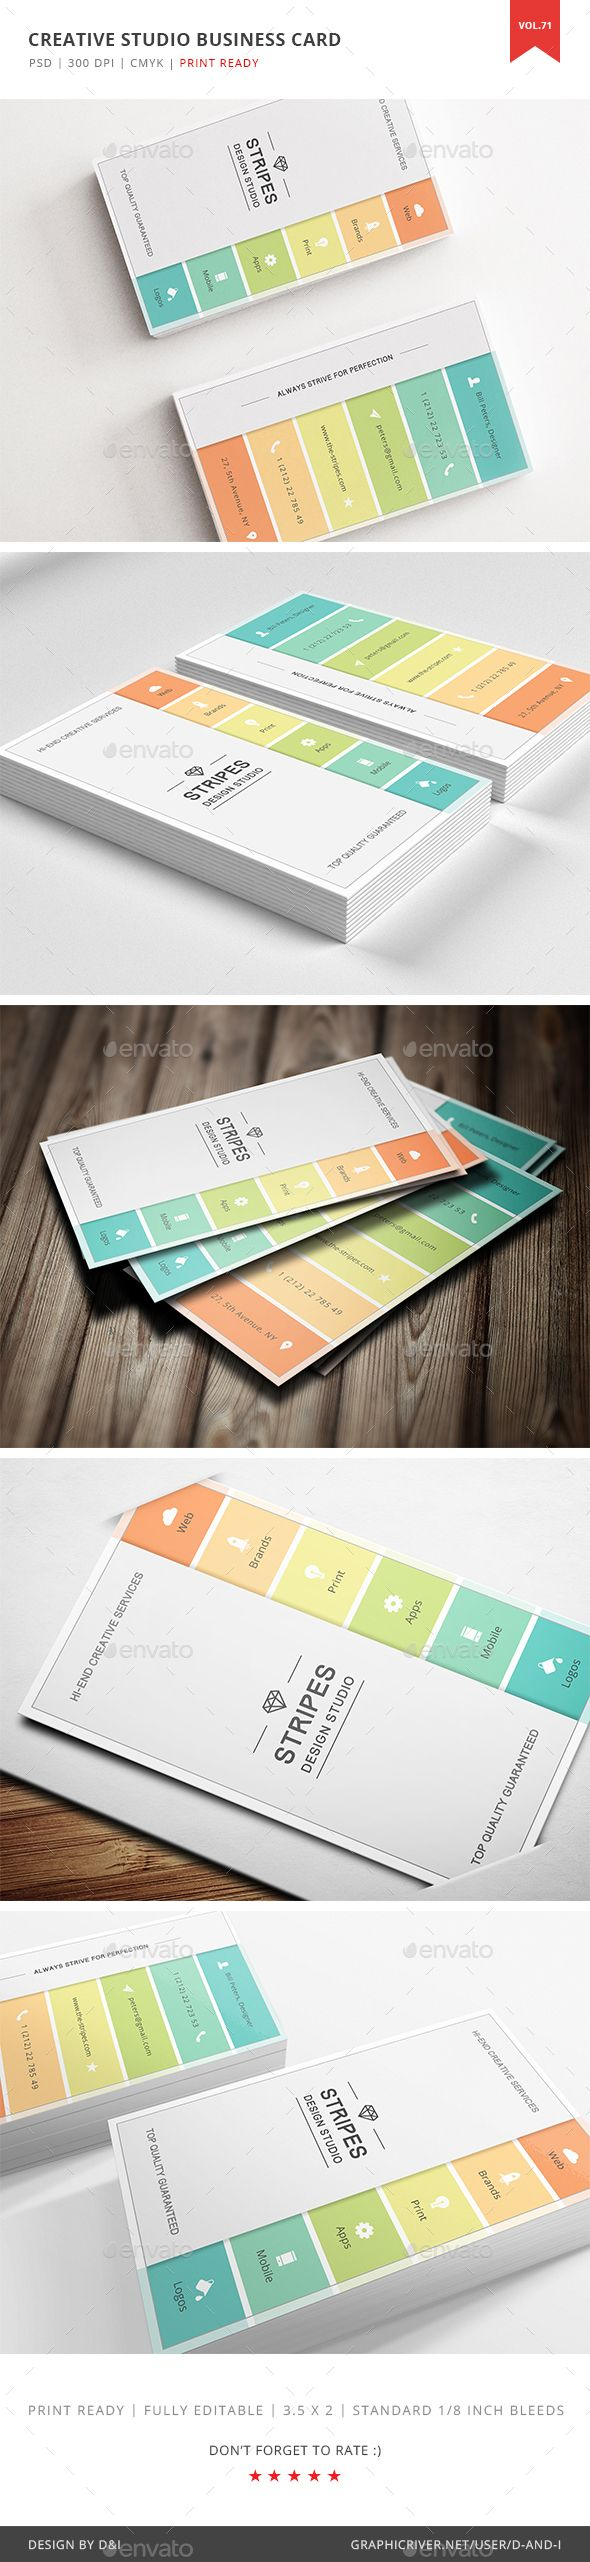 417 best art science of business cards images on pinterest 417 best art science of business cards images on pinterest brushes business cards and cards magicingreecefo Gallery